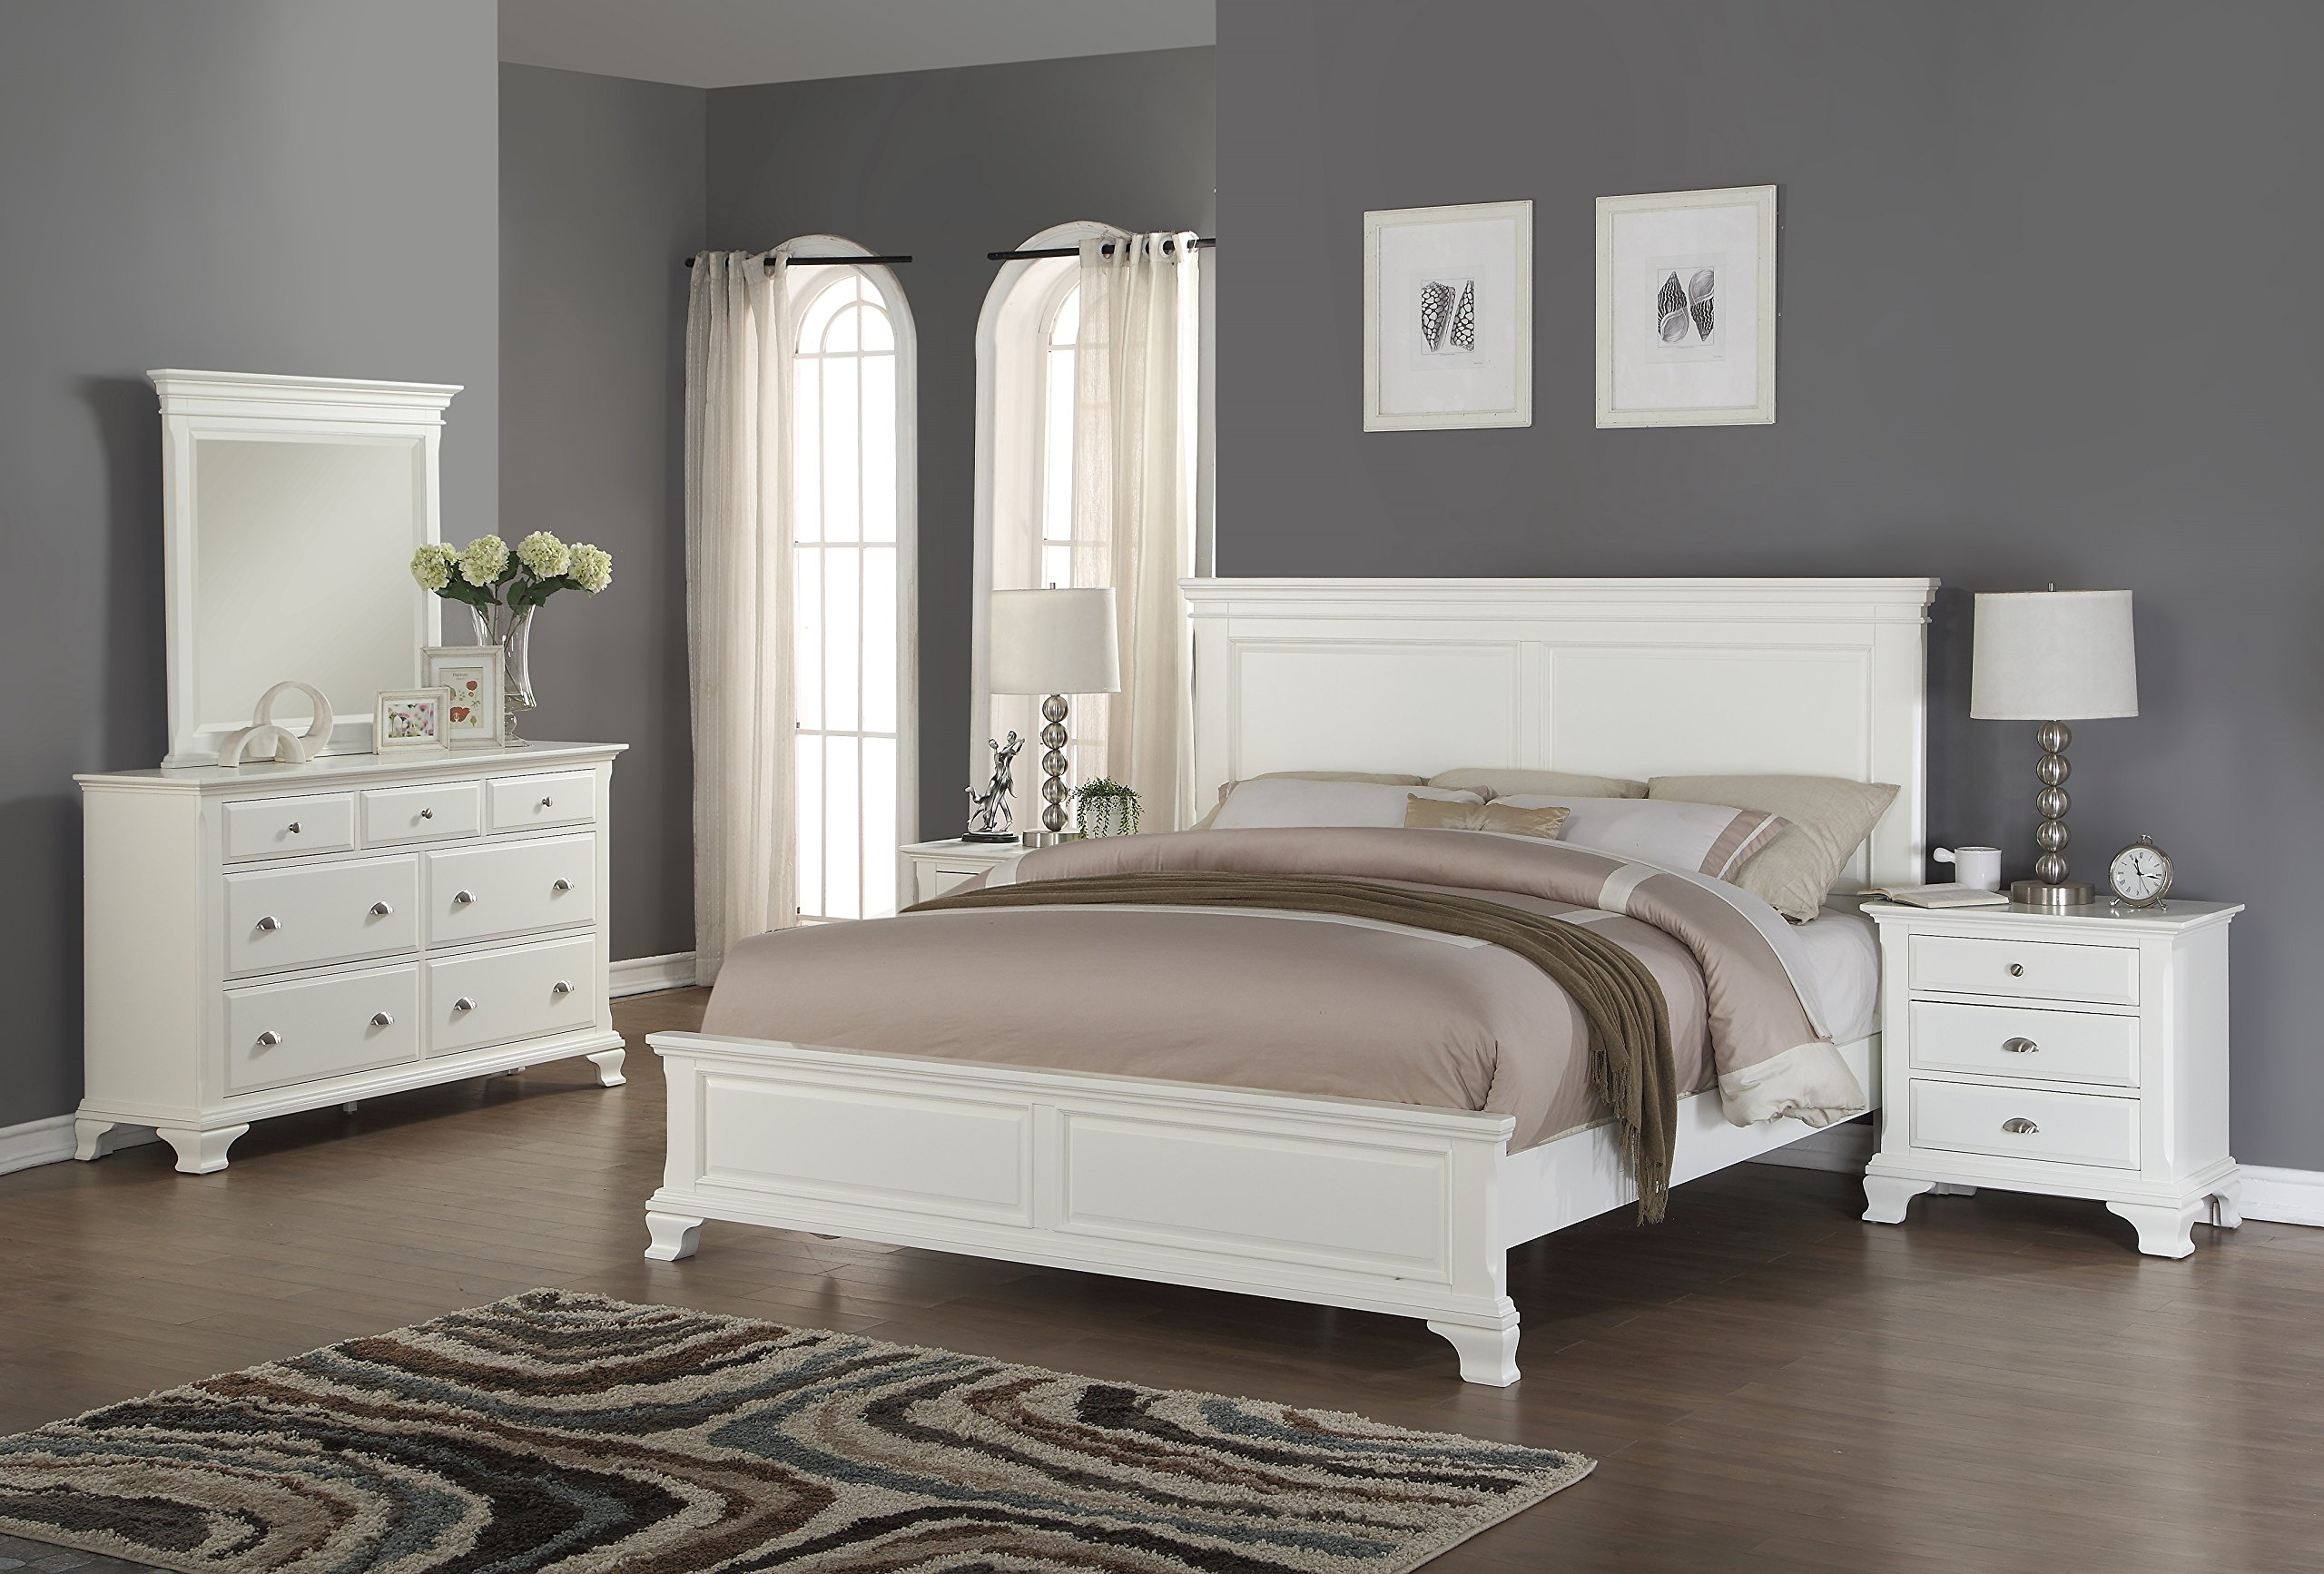 Roundhill Furniture Laveno 012 White Wood Bedroom Furniture Set, Includes Queen Bed, Dresser, Mirror and 2 Night Stands by Roundhill Furniture